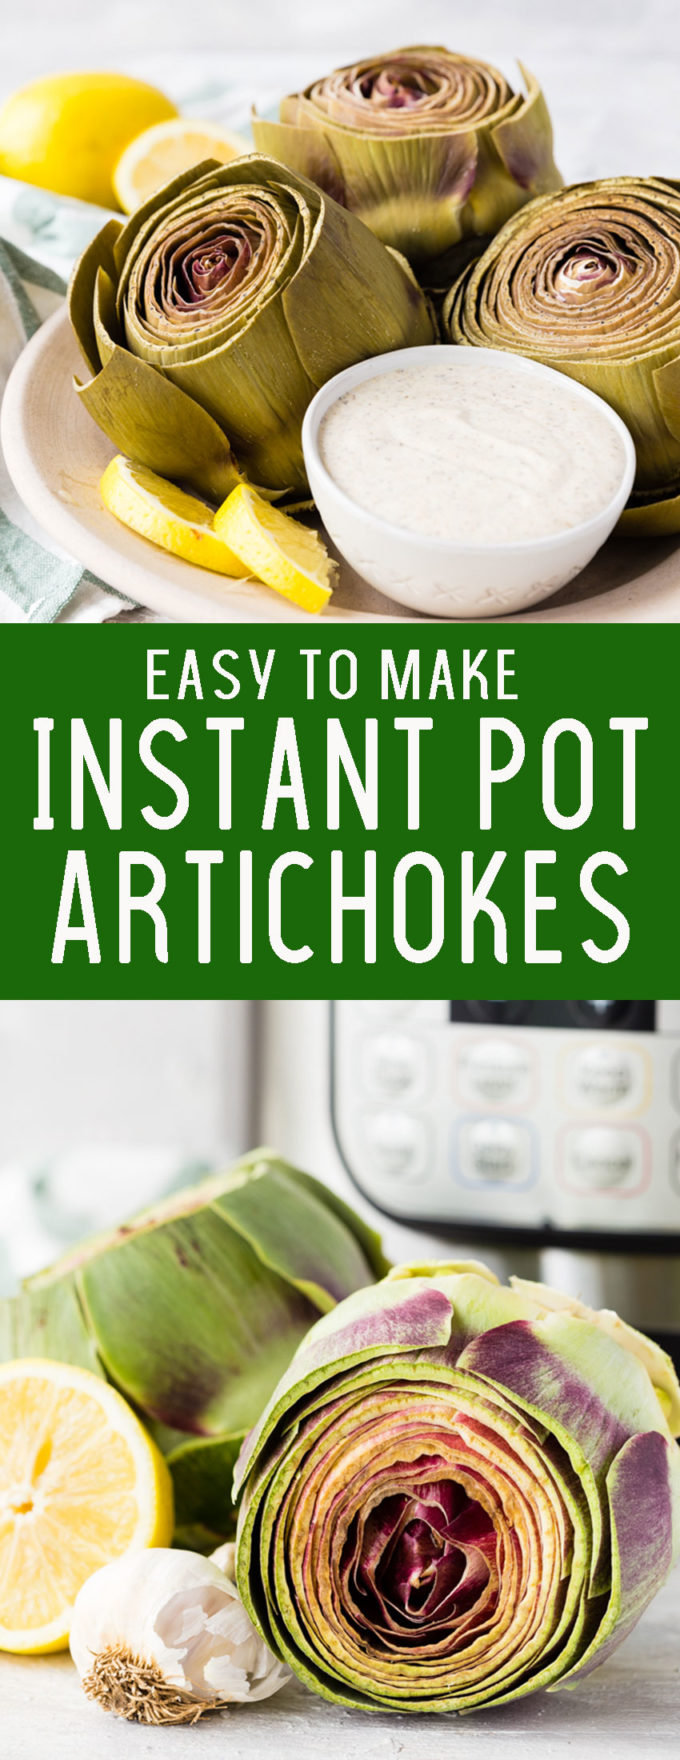 No more pots of boiling water, make artichokes in your Instant Pot for a quick and easy pressure cooker side.